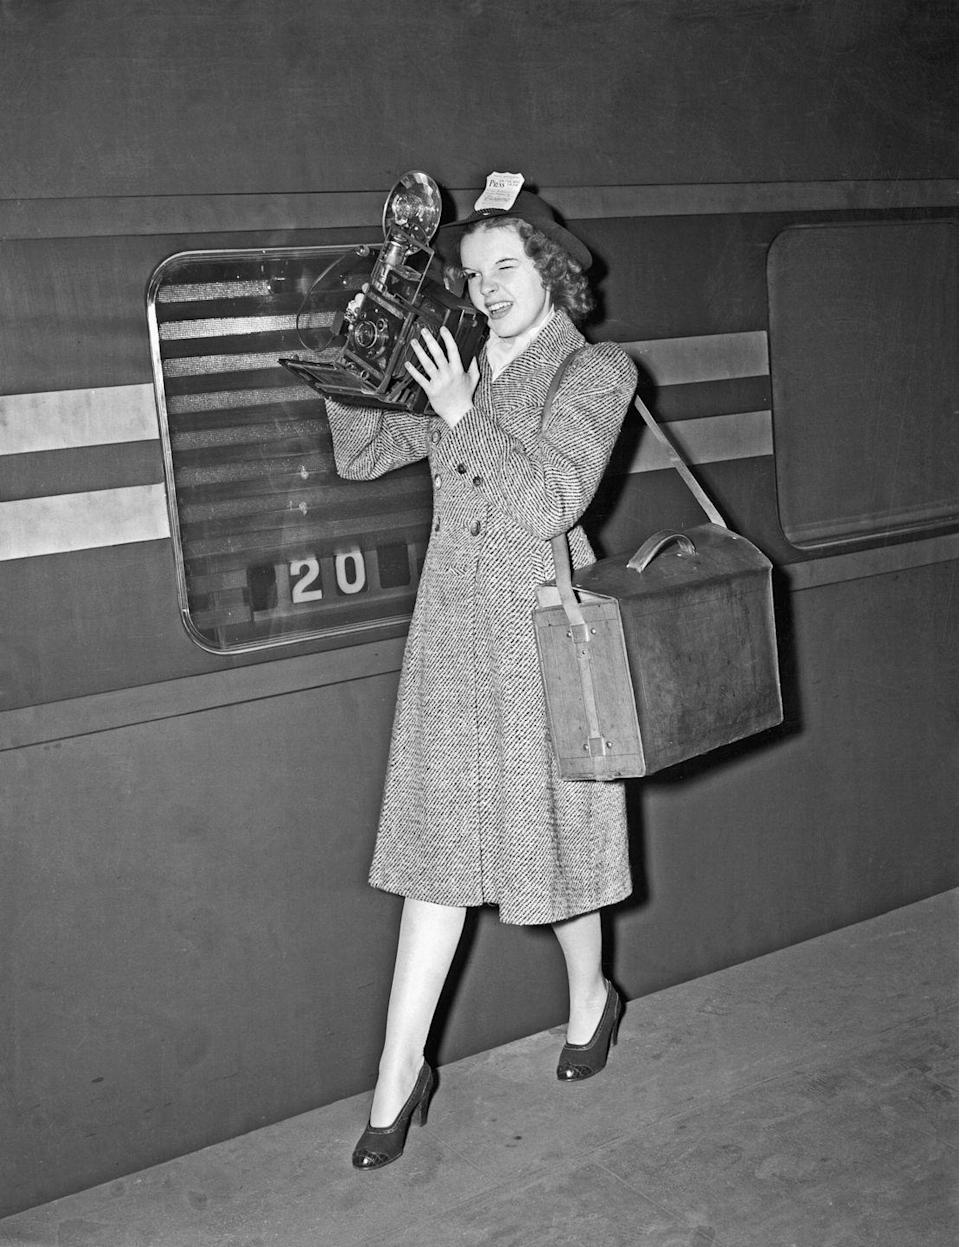 <p>Judy arrived at Grand Central Station to kick off her vacation after completing a film on the West Coast. </p>